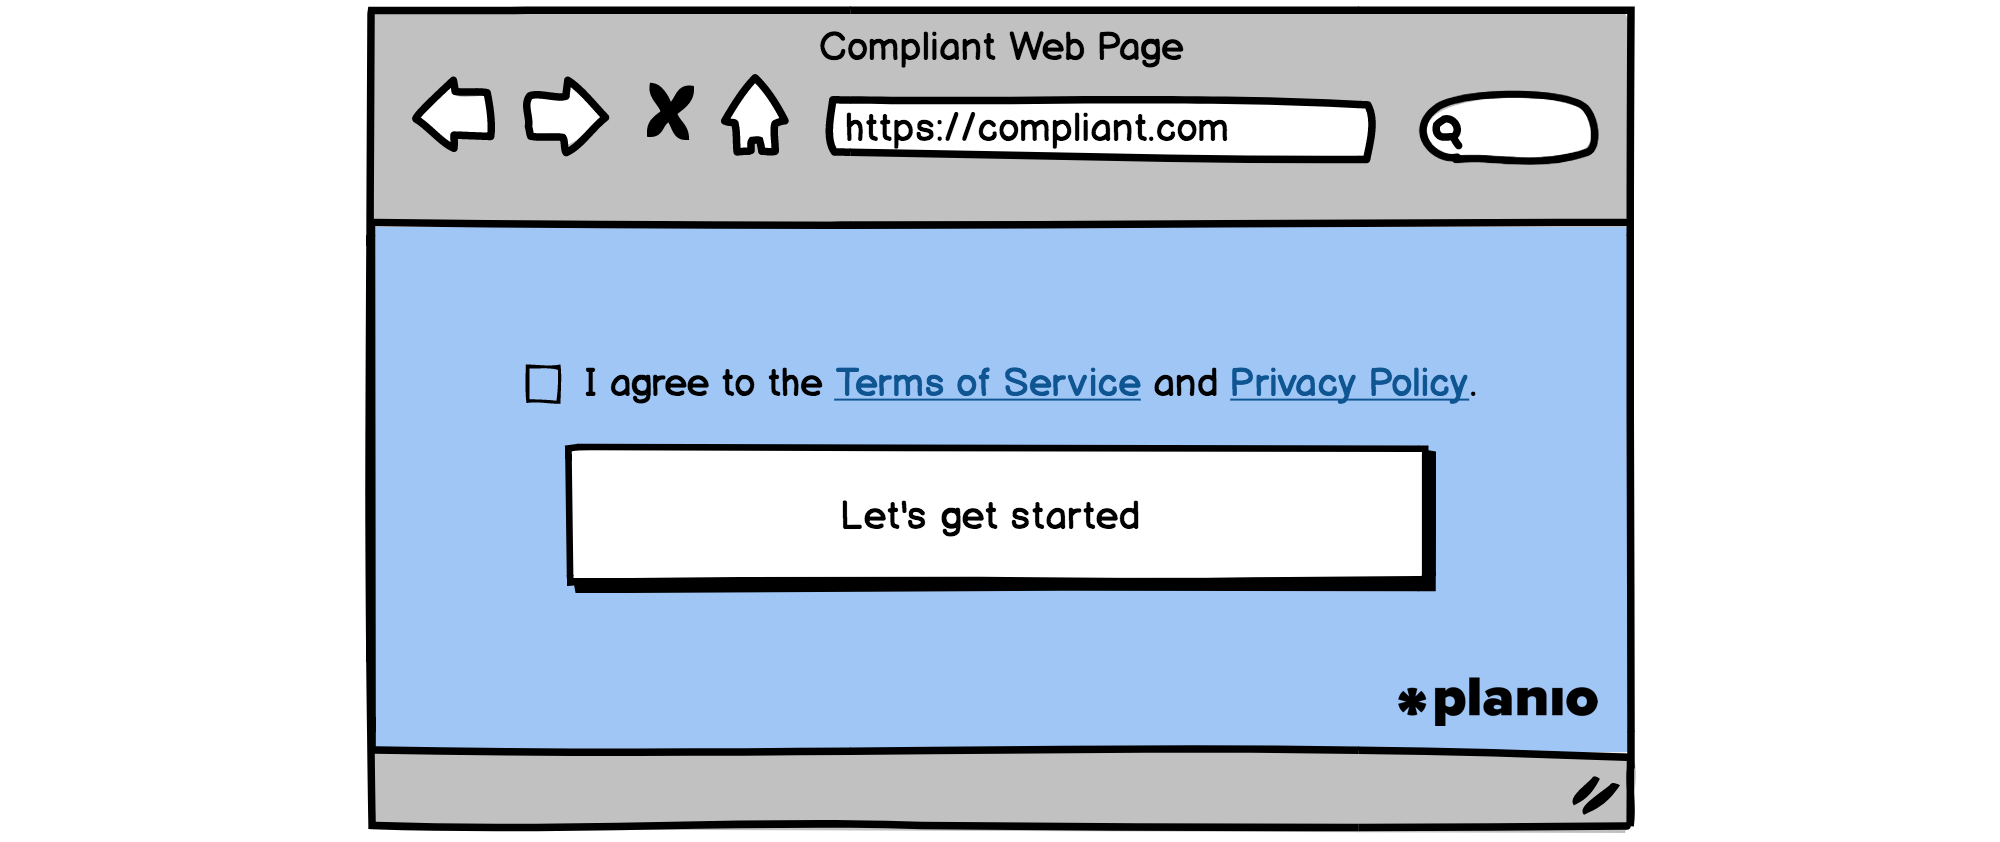 Compliant sign-up form